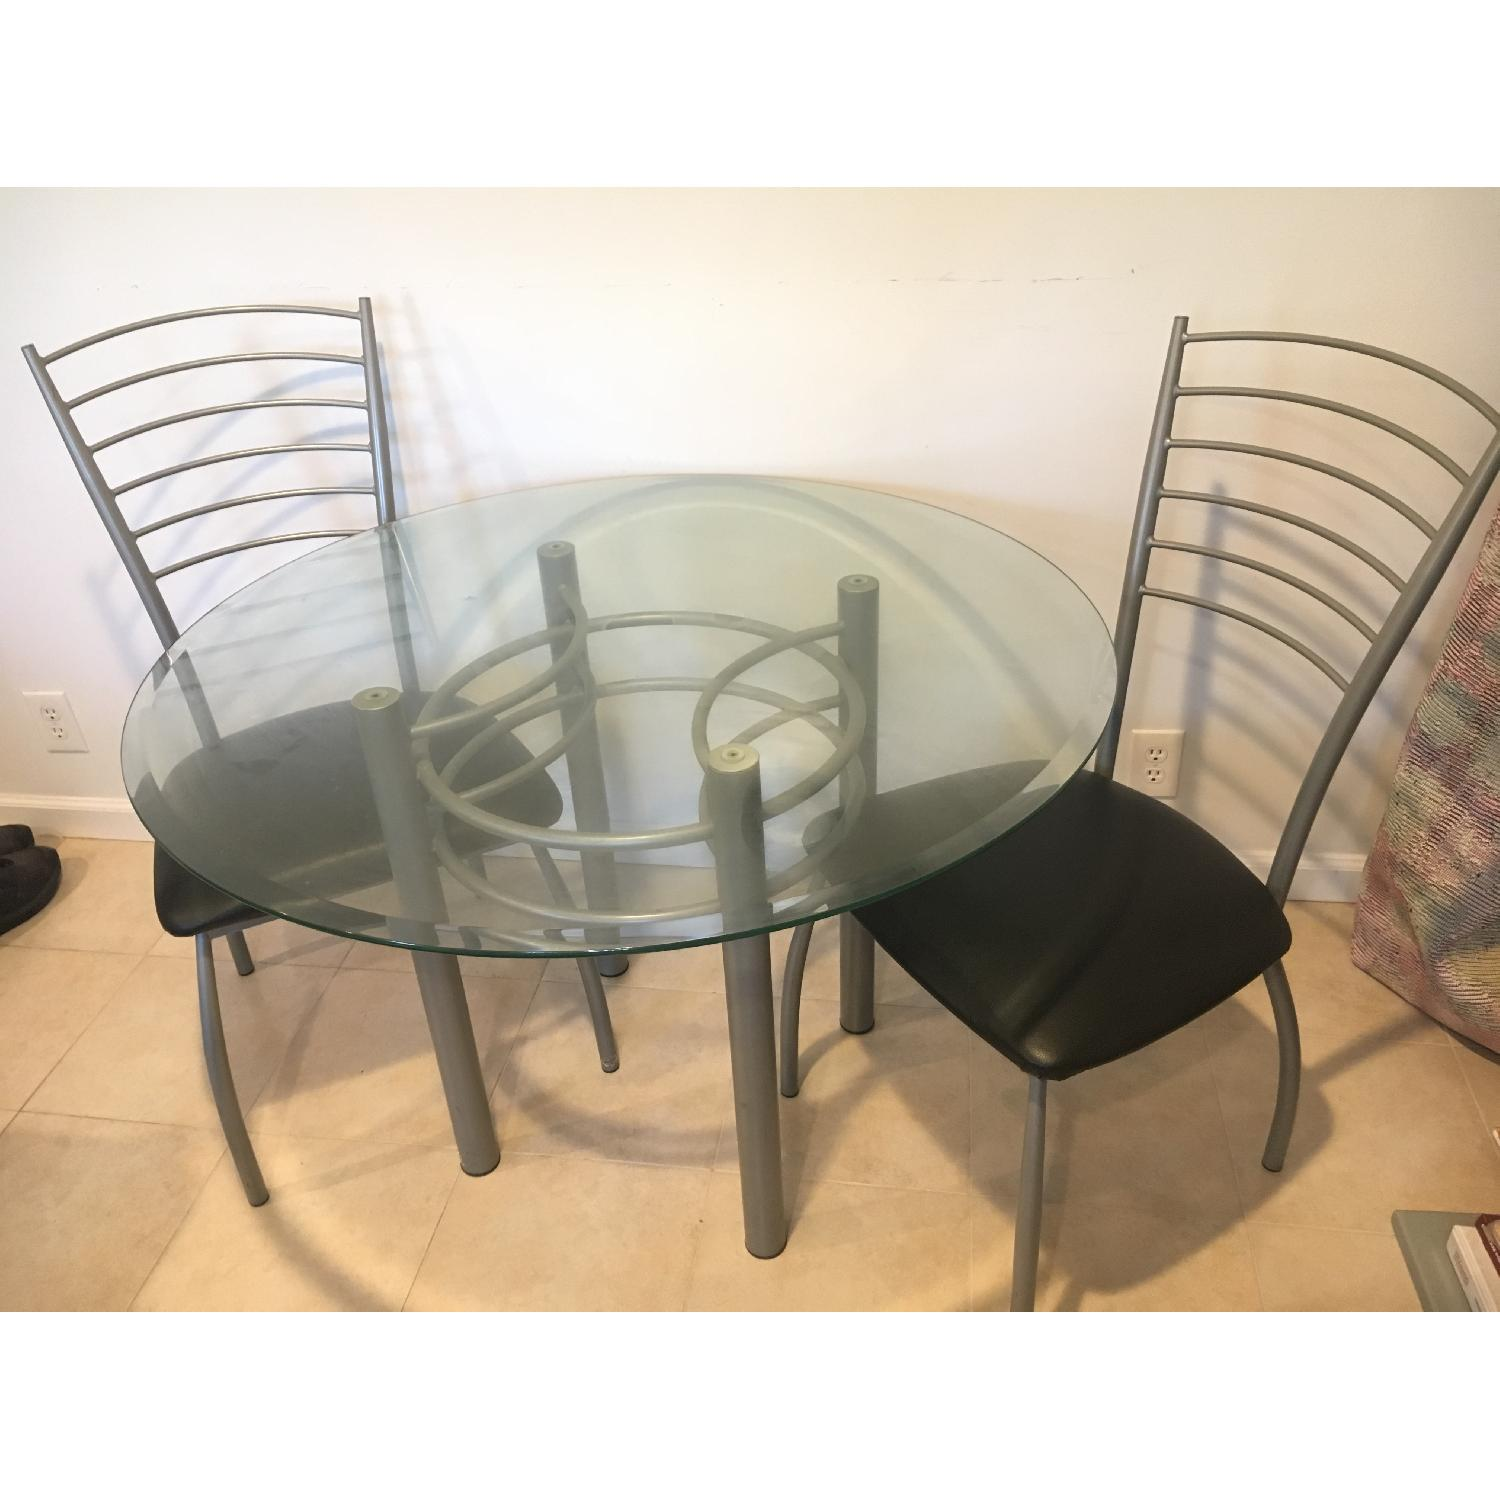 Amisco Glass Dining Table w/ 4 Chairs - image-3